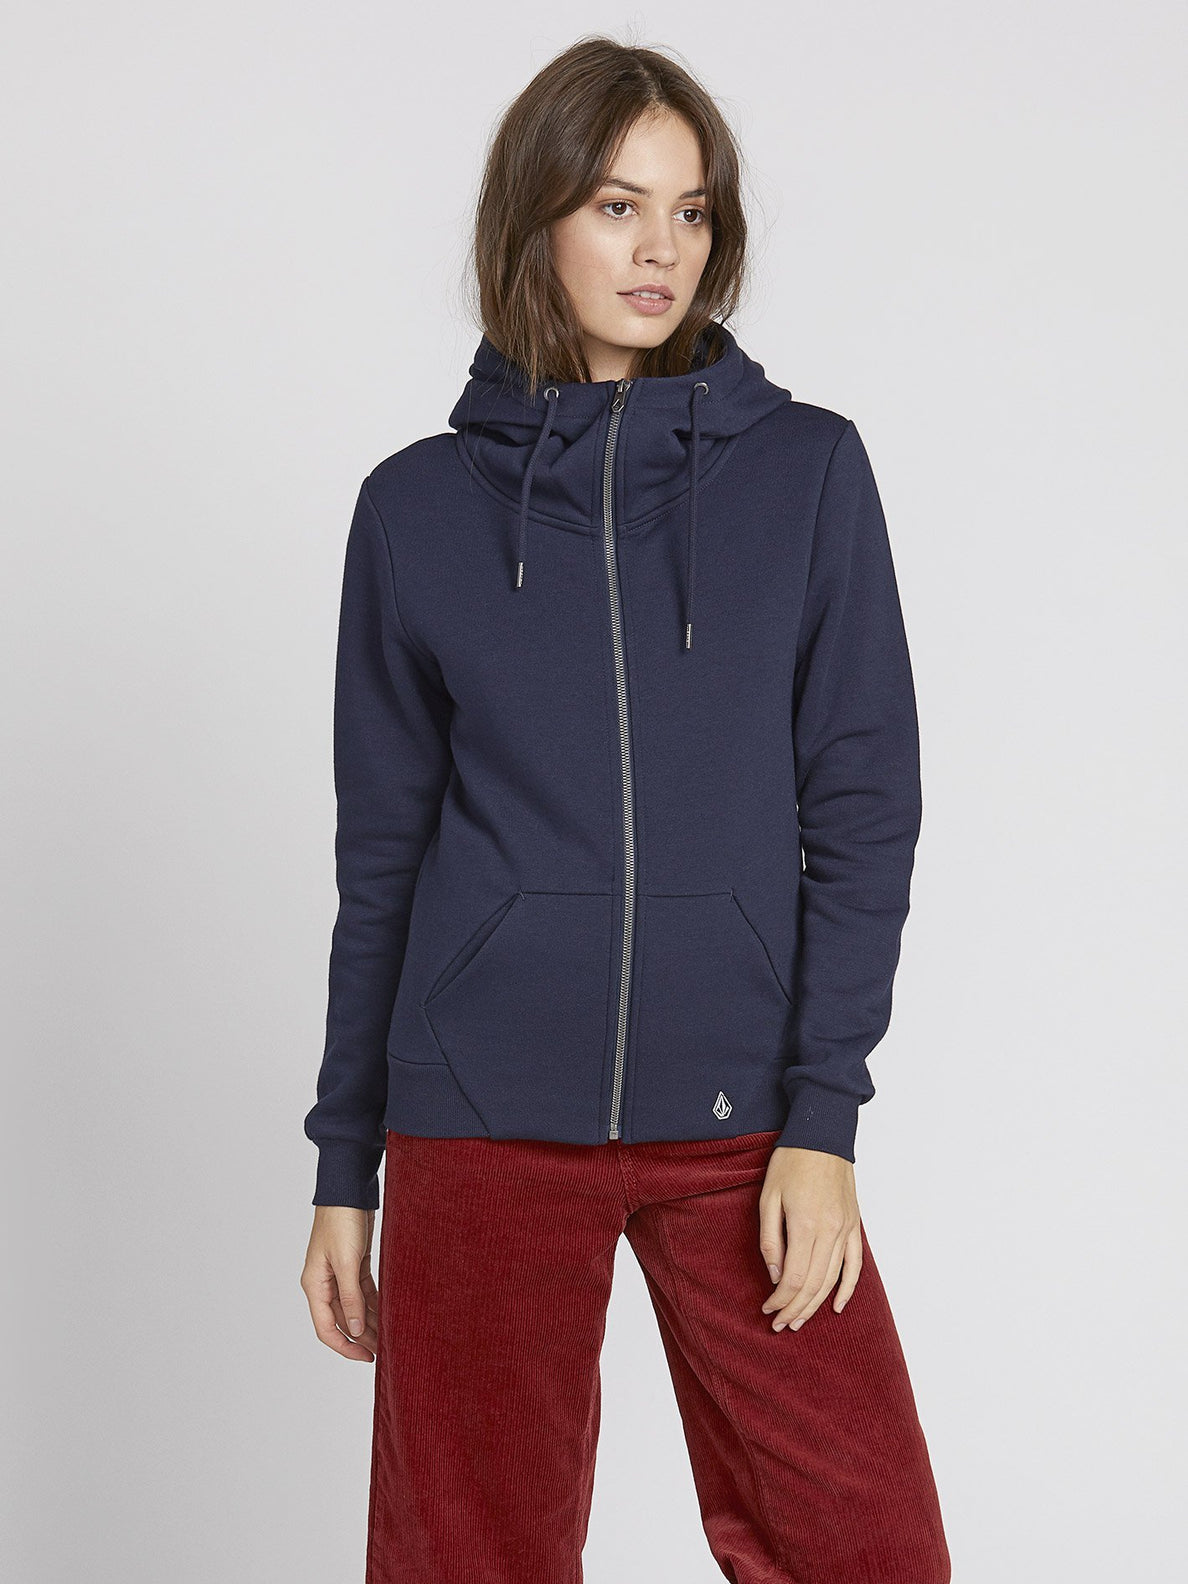 On Walk Zip Kapuzenjacke By Sea Navy – Flce Volcom Deutschland Yb7gf6yv